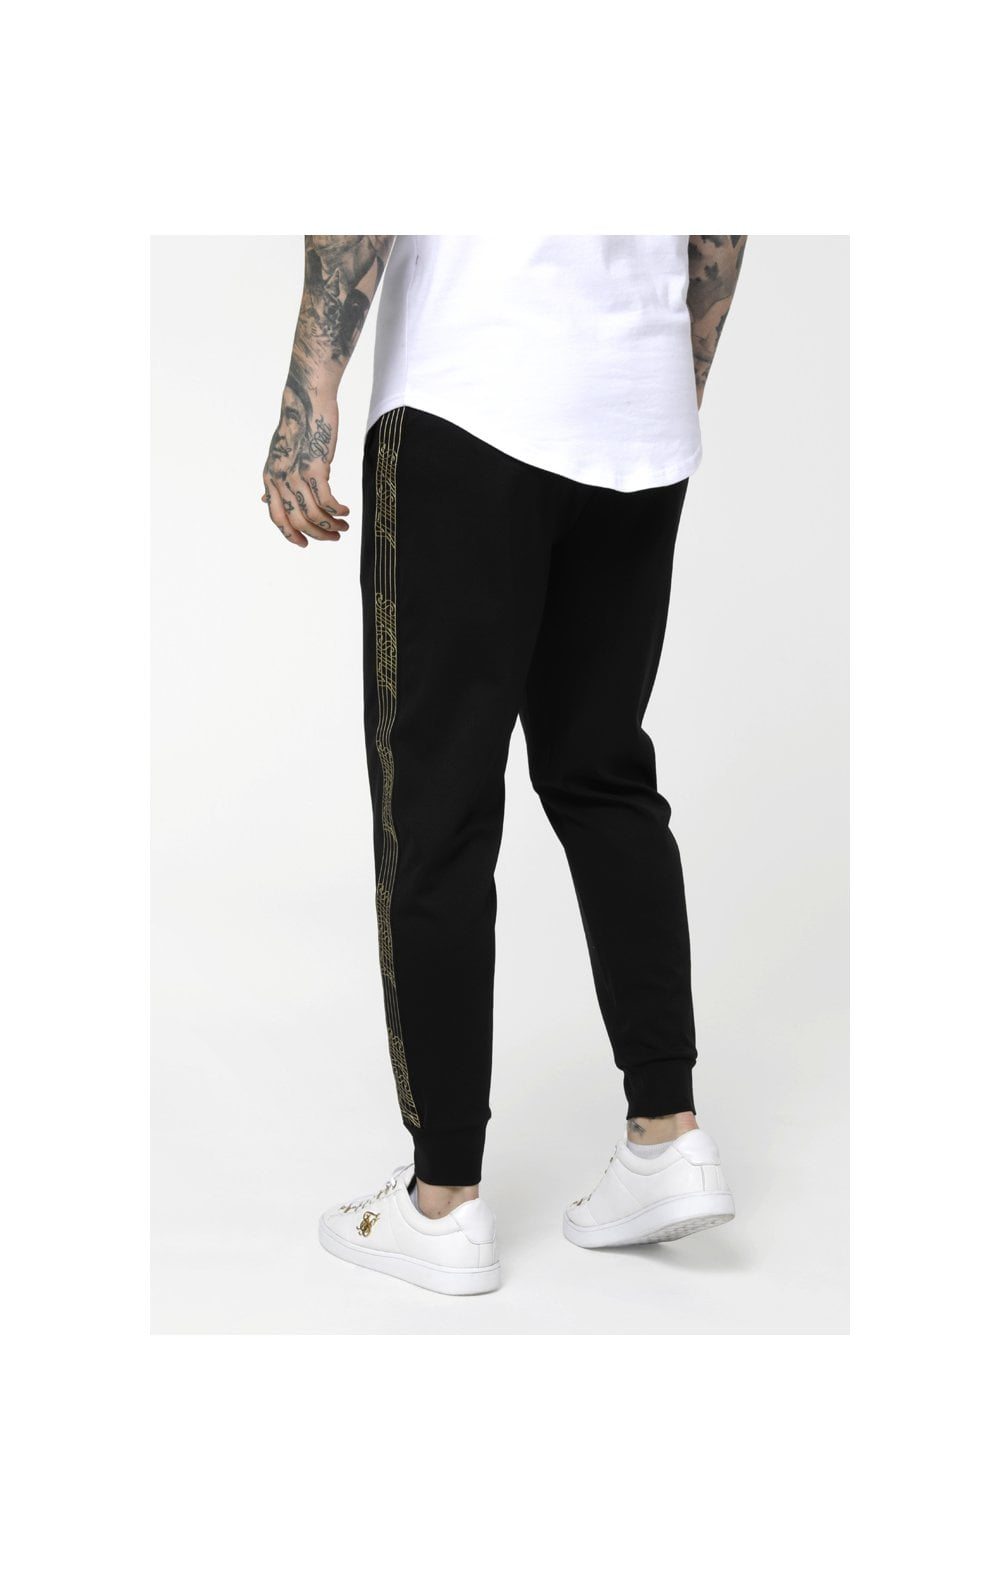 Load image into Gallery viewer, SikSilk Gold Edit Cuffed Cropped Runner Joggers - Black (4)